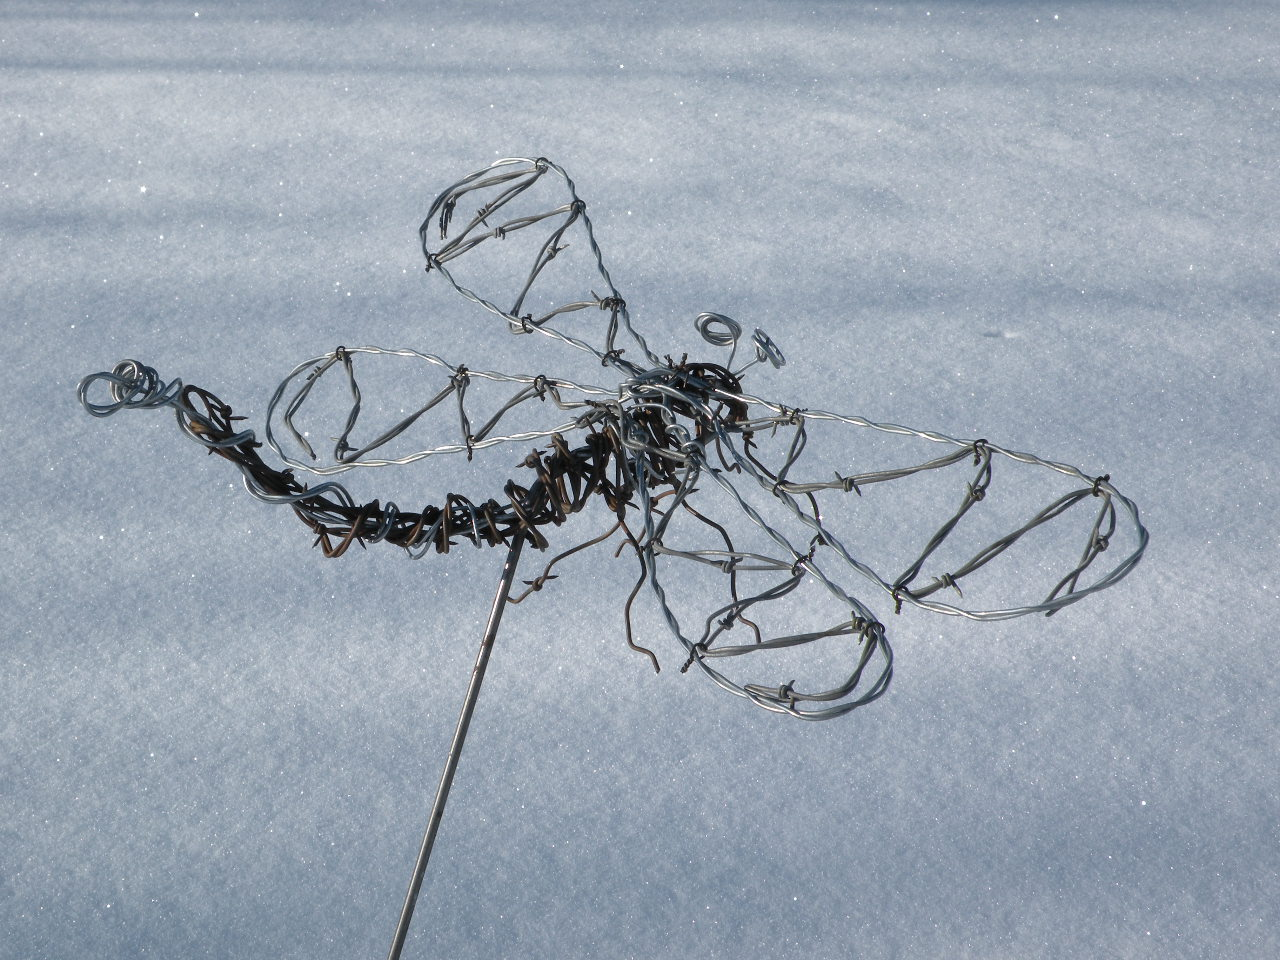 Dragon Fly wire sculpture